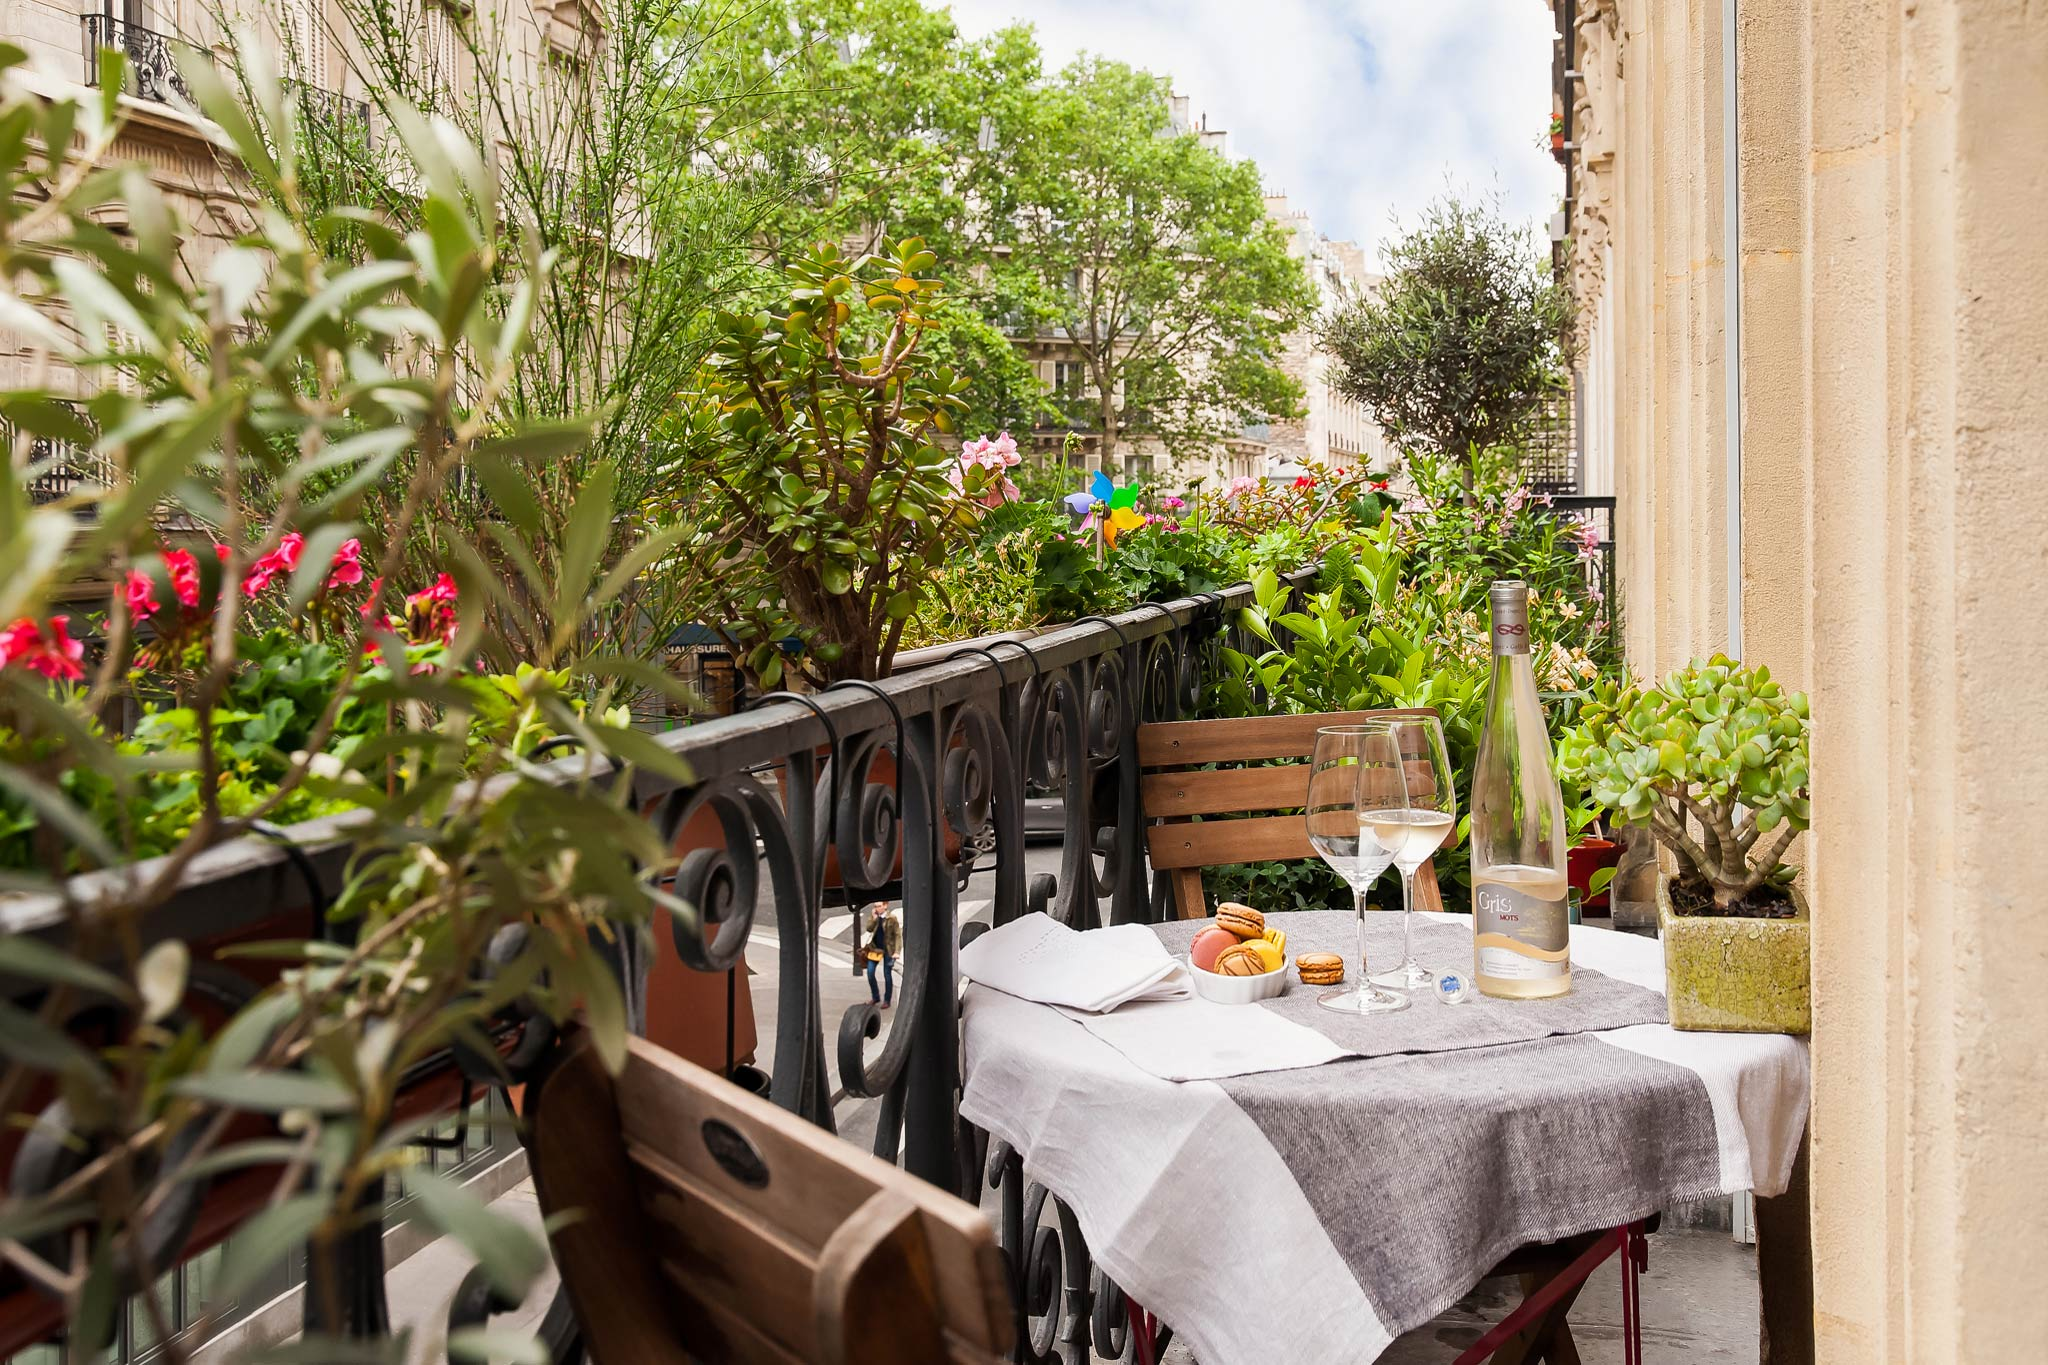 A table and chairs sits on the balcony of the Updated Parisian Charm apartment in Bastille. The table is set with macarons, wine glasses and a bottle of wine. The table has a tablecloth atop it and flowers and plants line the railing of the balcony.